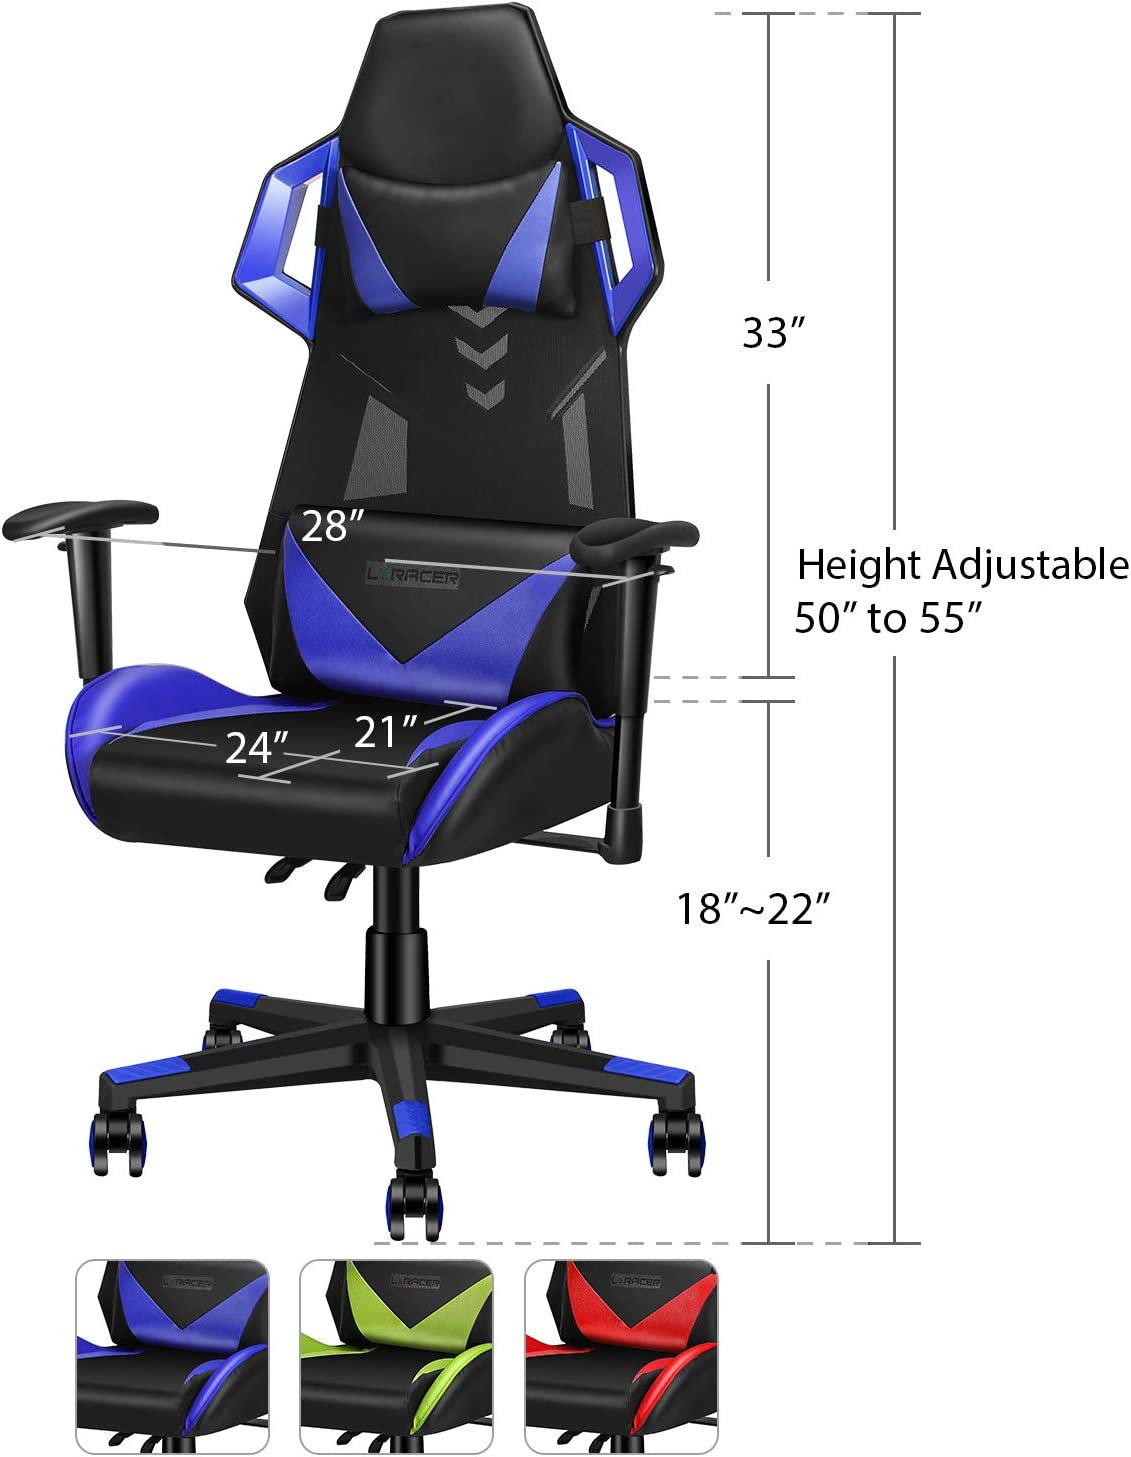 Adjustable Racing Chair with Lumbar Support /& Headrest Recliner Video Games Chair with Adjustable Height and Rocking Angle High Back Swivel Computer Chair LUXMOD Ergonomic Gaming Chair Green ASDLU1070049-2